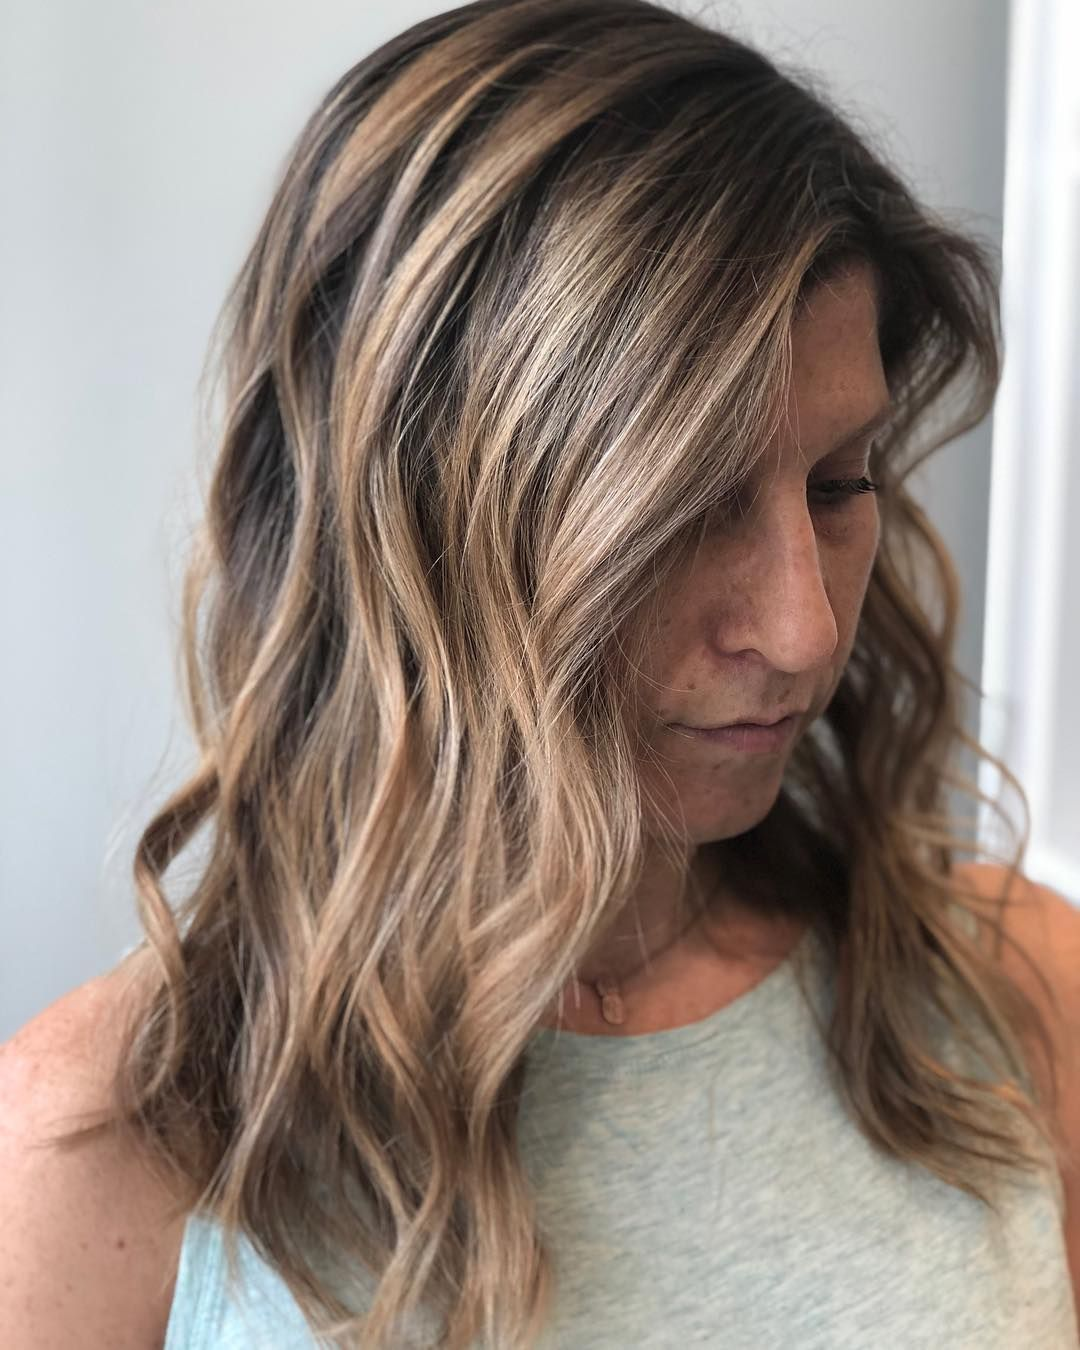 Hazelnut blonde balayage with loose waves by Beth Dassing